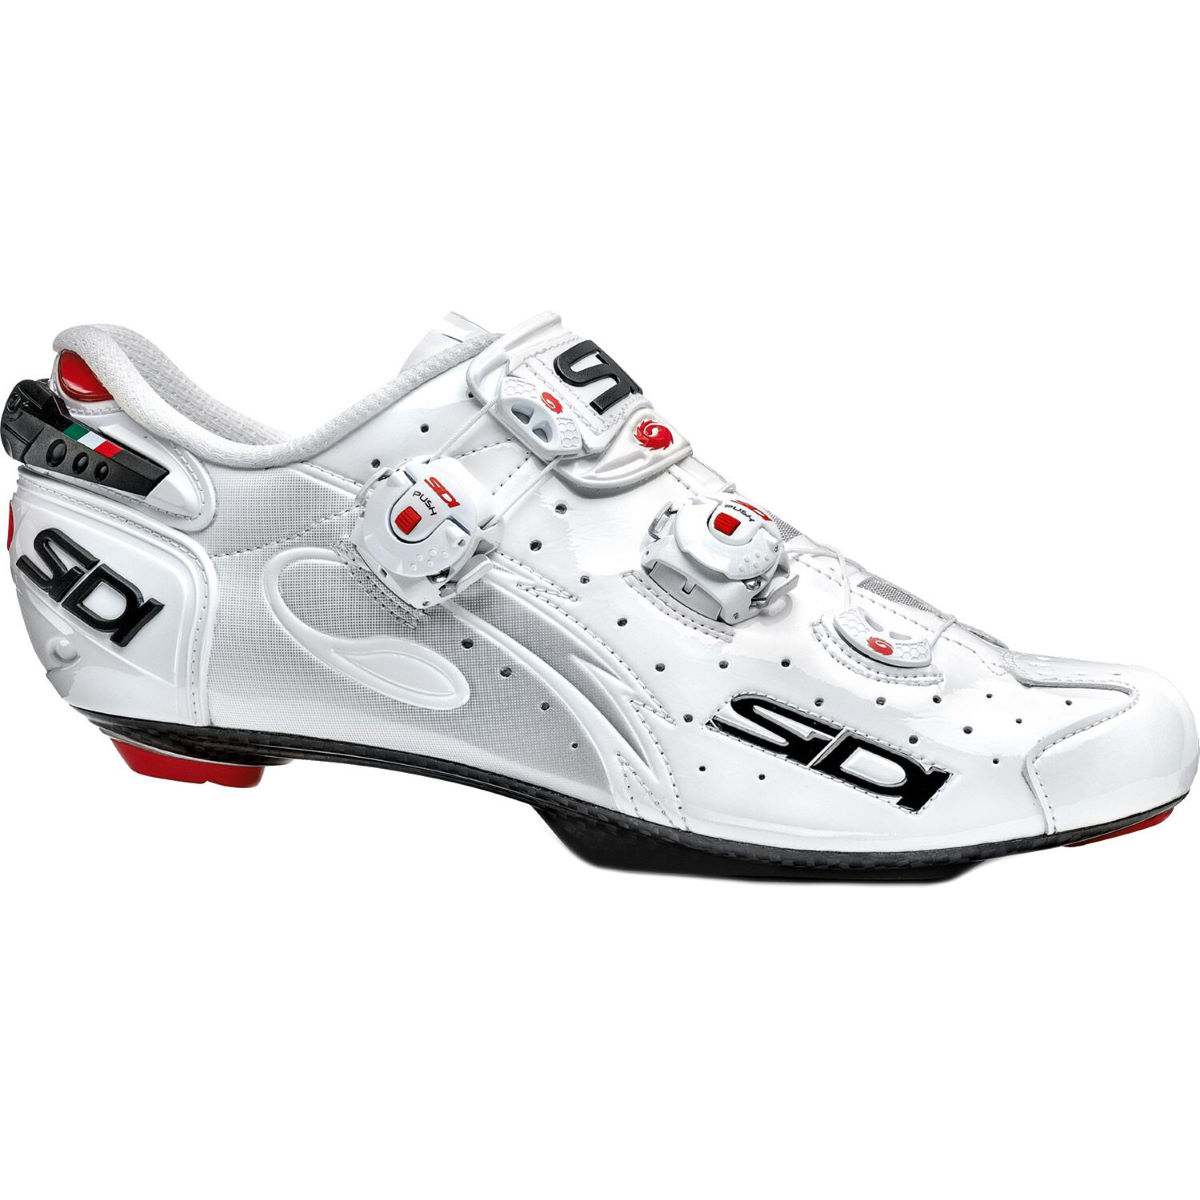 Chaussures de route Sidi Wire Carbon SP (Speedplay) - 39 Blanc/Blanc